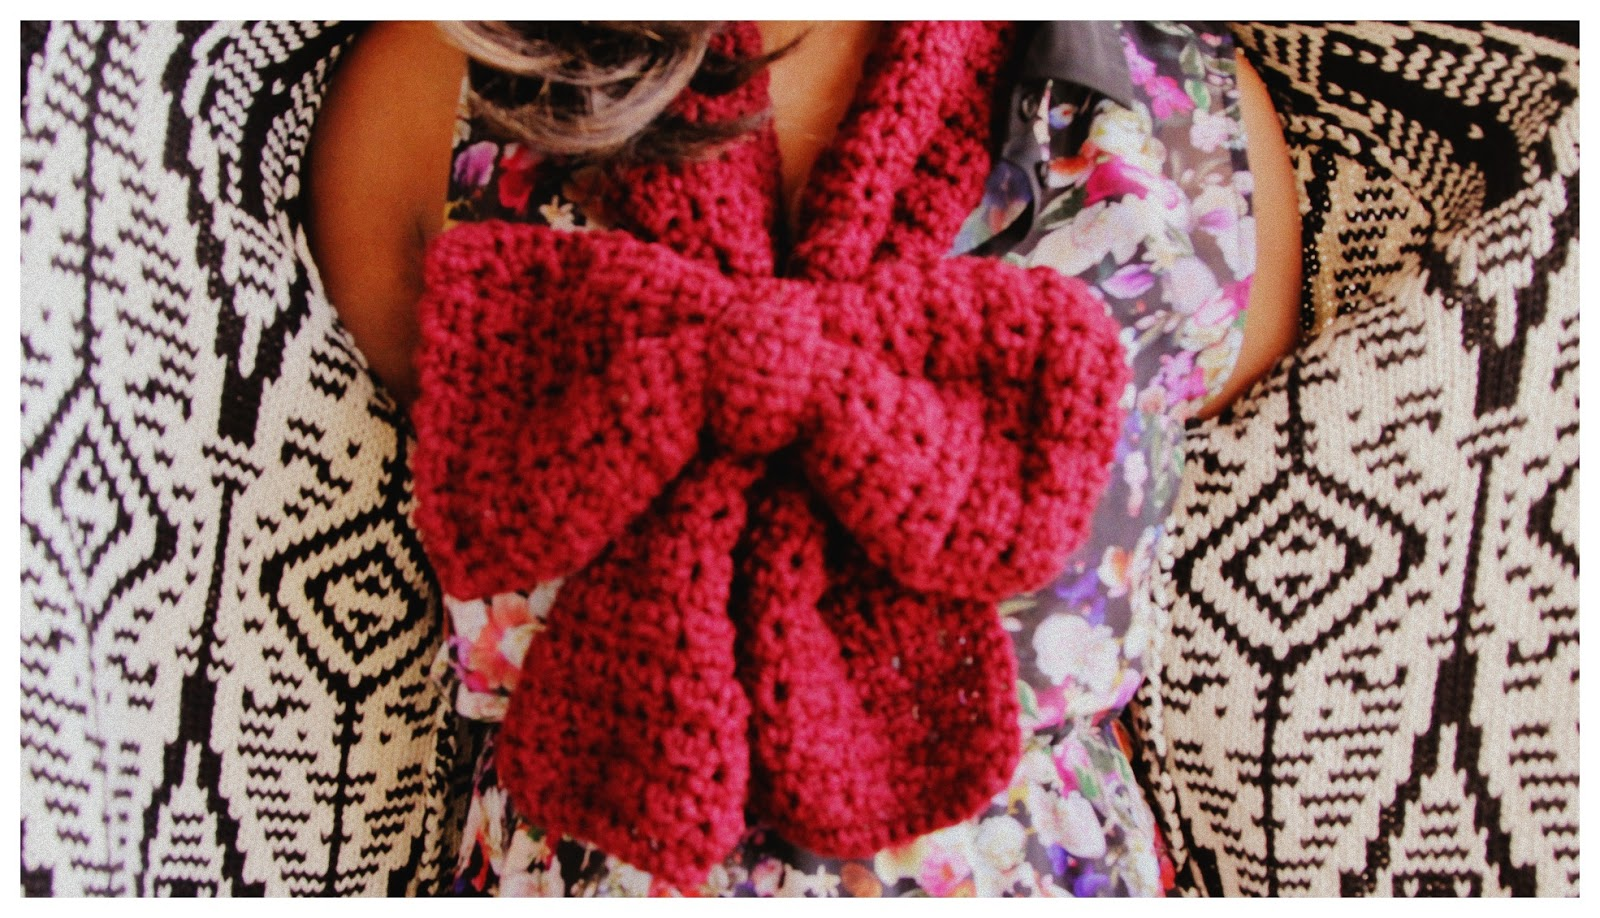 the dream crochet blog.: The Tutorial: The Crochet Bow Scarf.